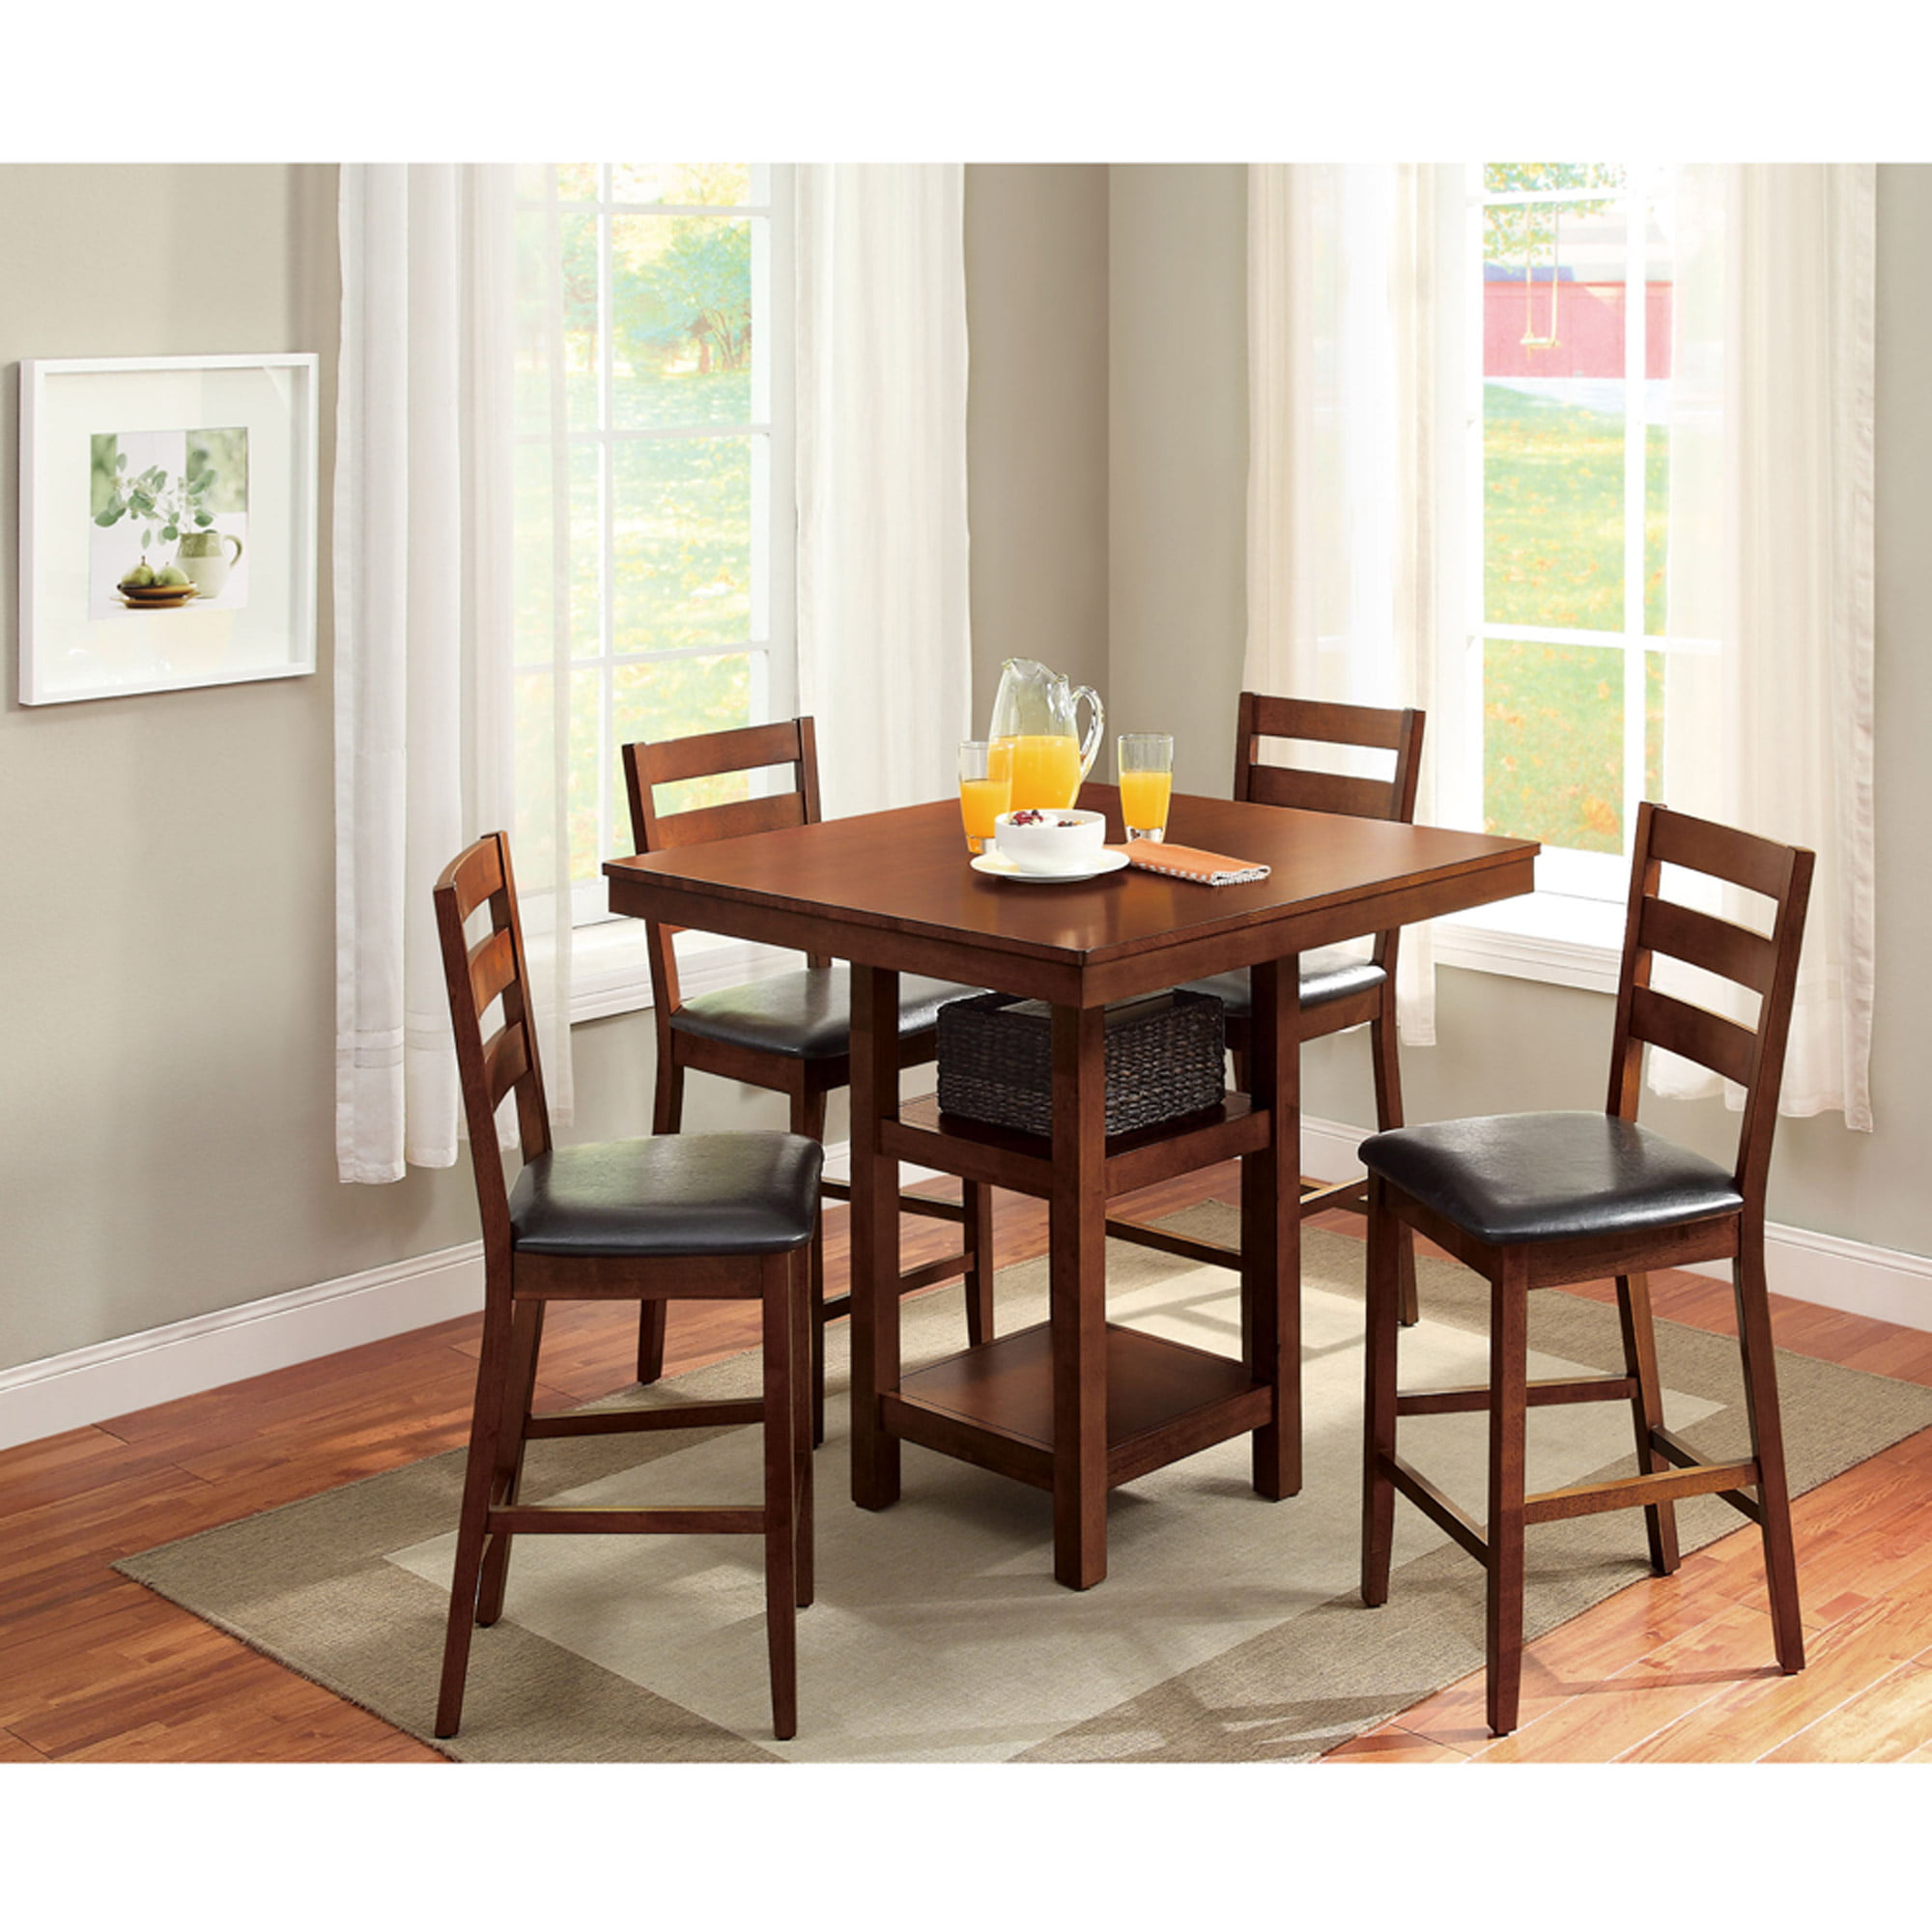 Dining Room Table Pictures Interesting Kitchen & Dining Furniture  Walmart Design Decoration